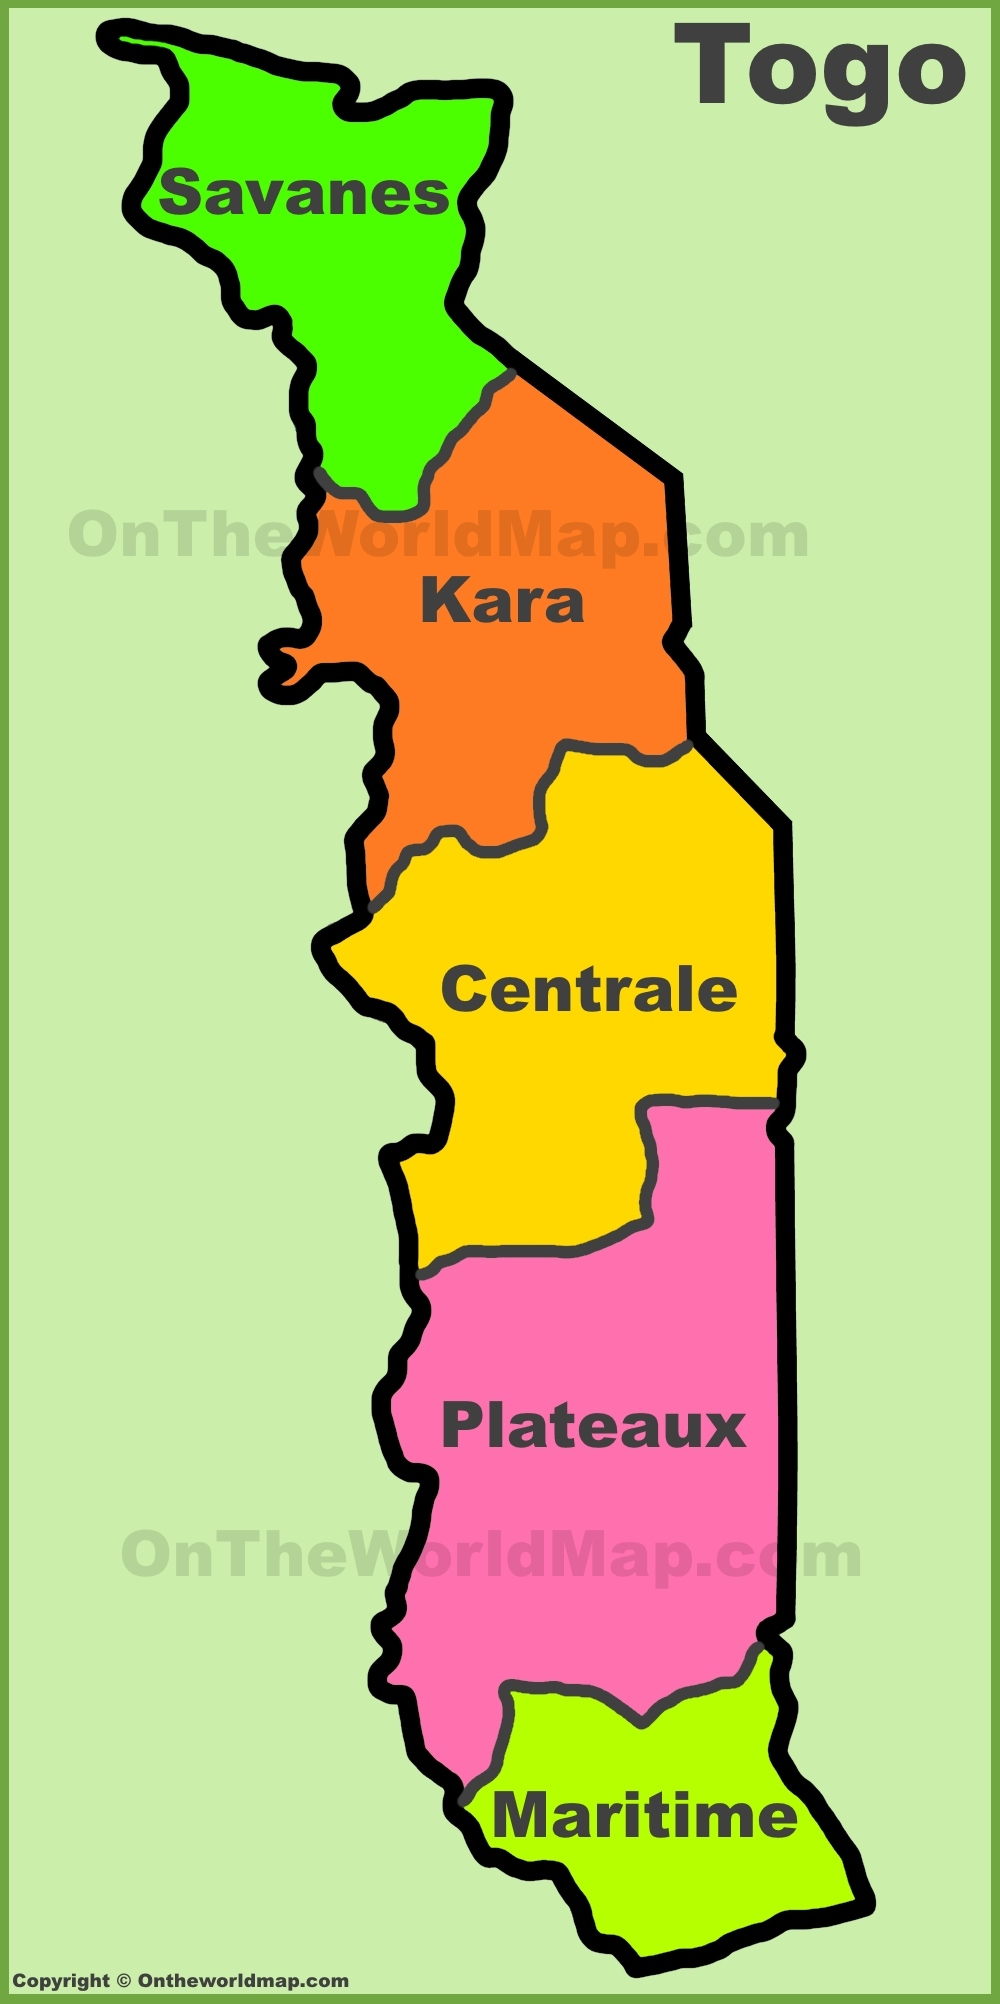 Administrative divisions map of Togo